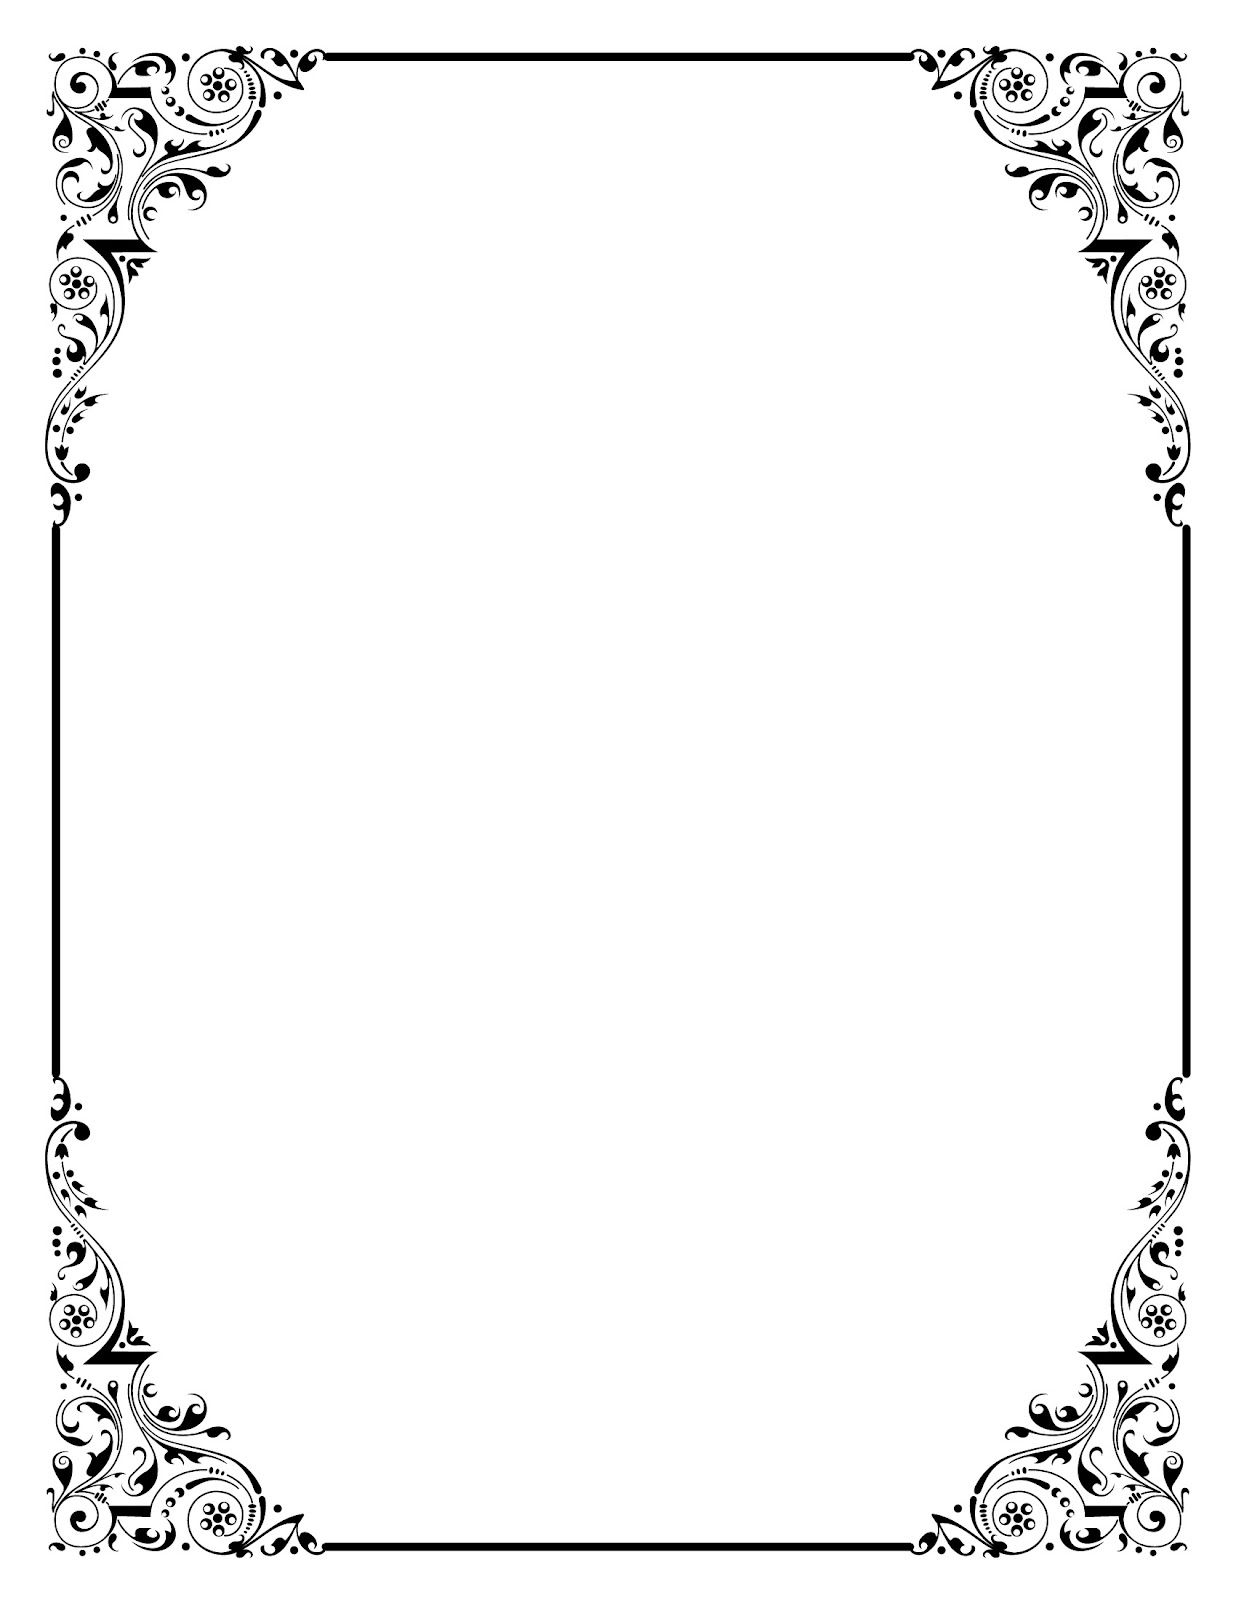 Clip Art Clip Art Frame 1000 images about clip art border fonts on pinterest animal design and free